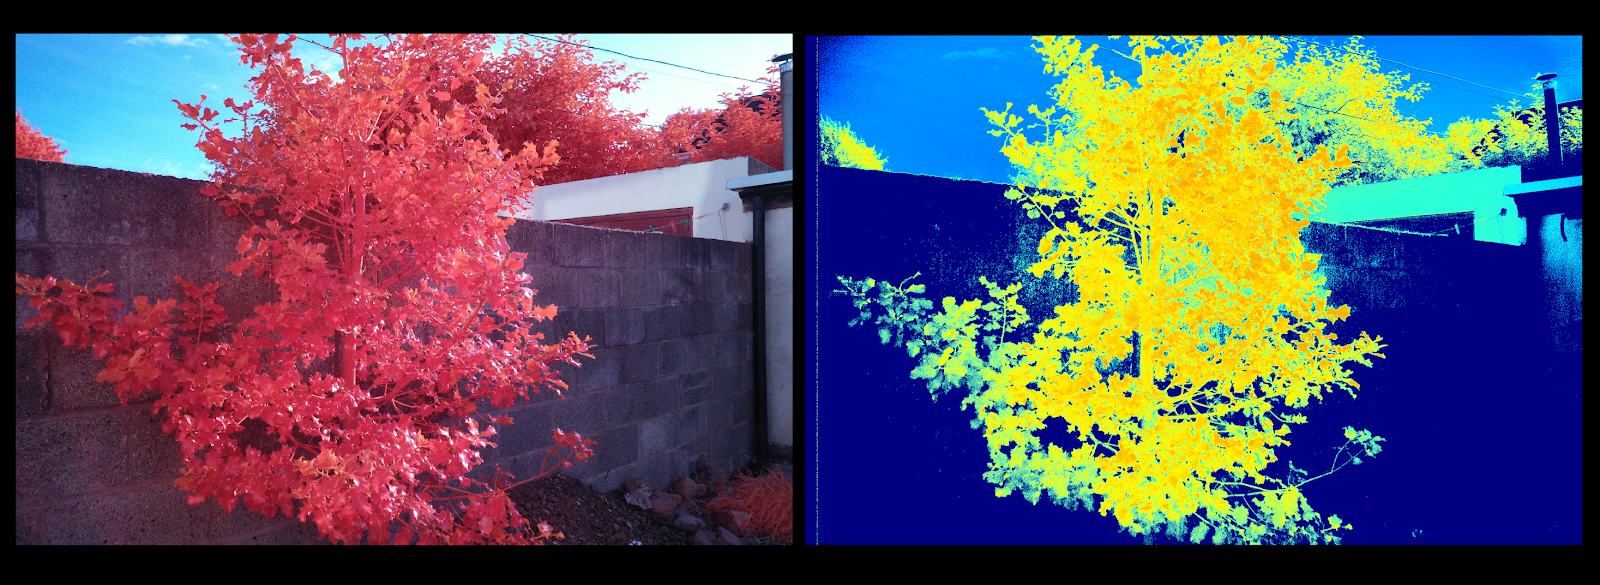 MuonRay: NDVI Vegetation Mapping Project with a NIR